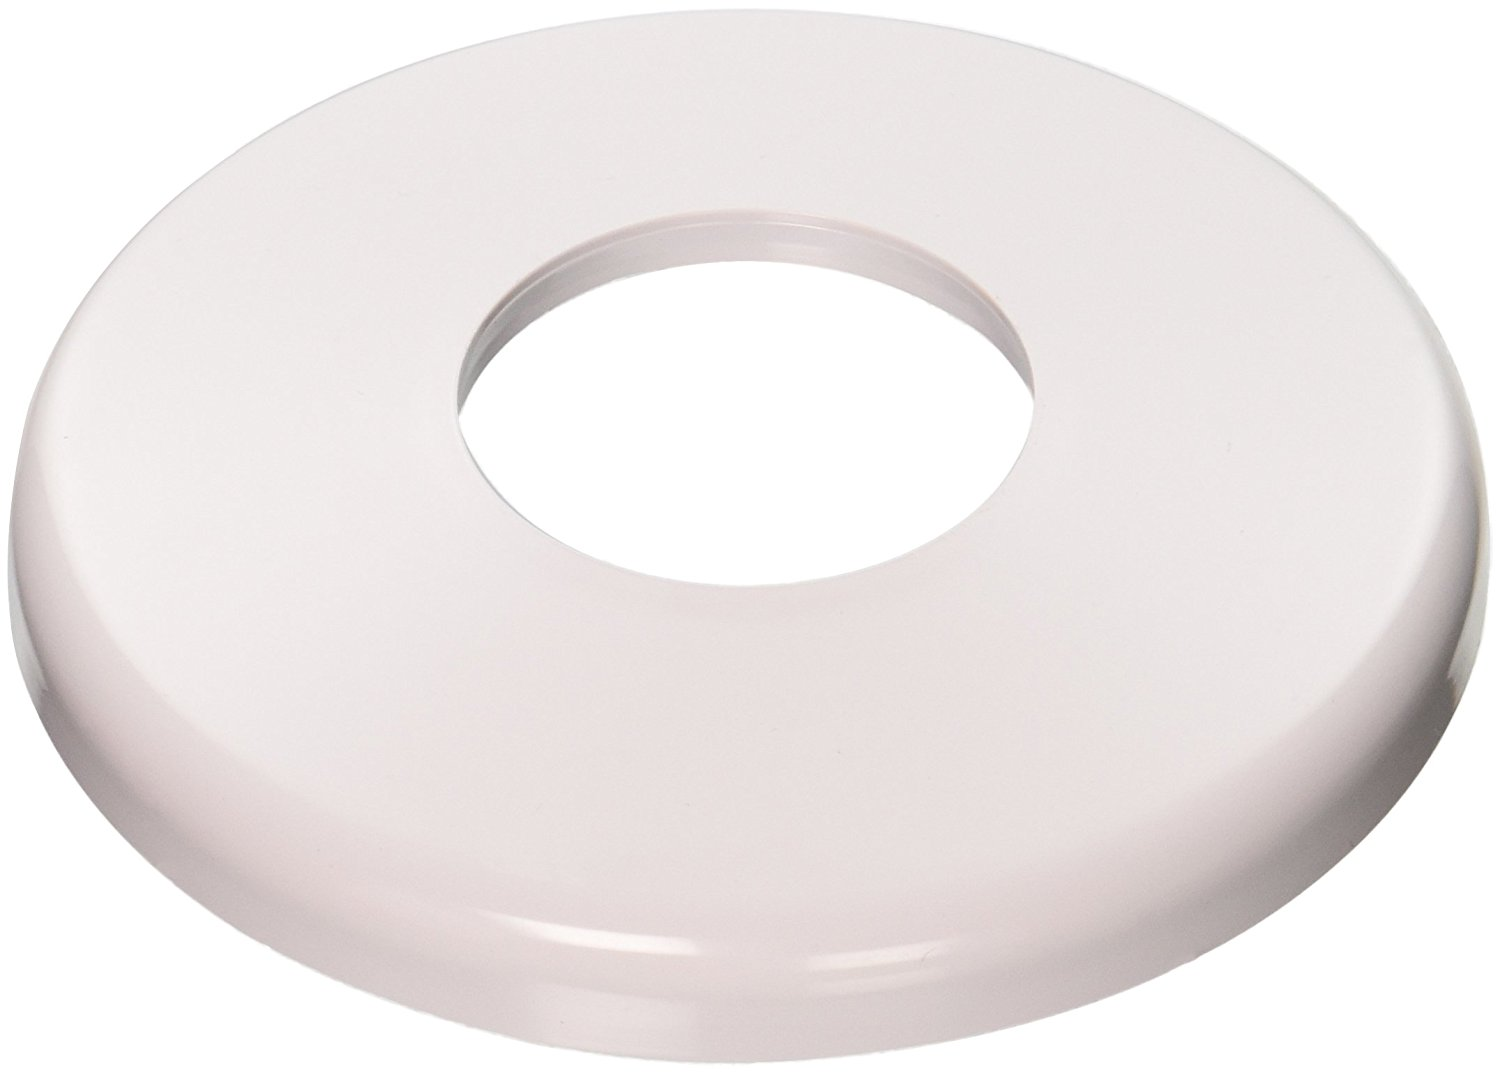 SP1041 White ABS Plastic Round Escutcheon Plate for 1-1/2-Inch Pipe Escutcheon plate By Hayward - Walmart.com  sc 1 st  Walmart.com & SP1041 White ABS Plastic Round Escutcheon Plate for 1-1/2-Inch Pipe ...